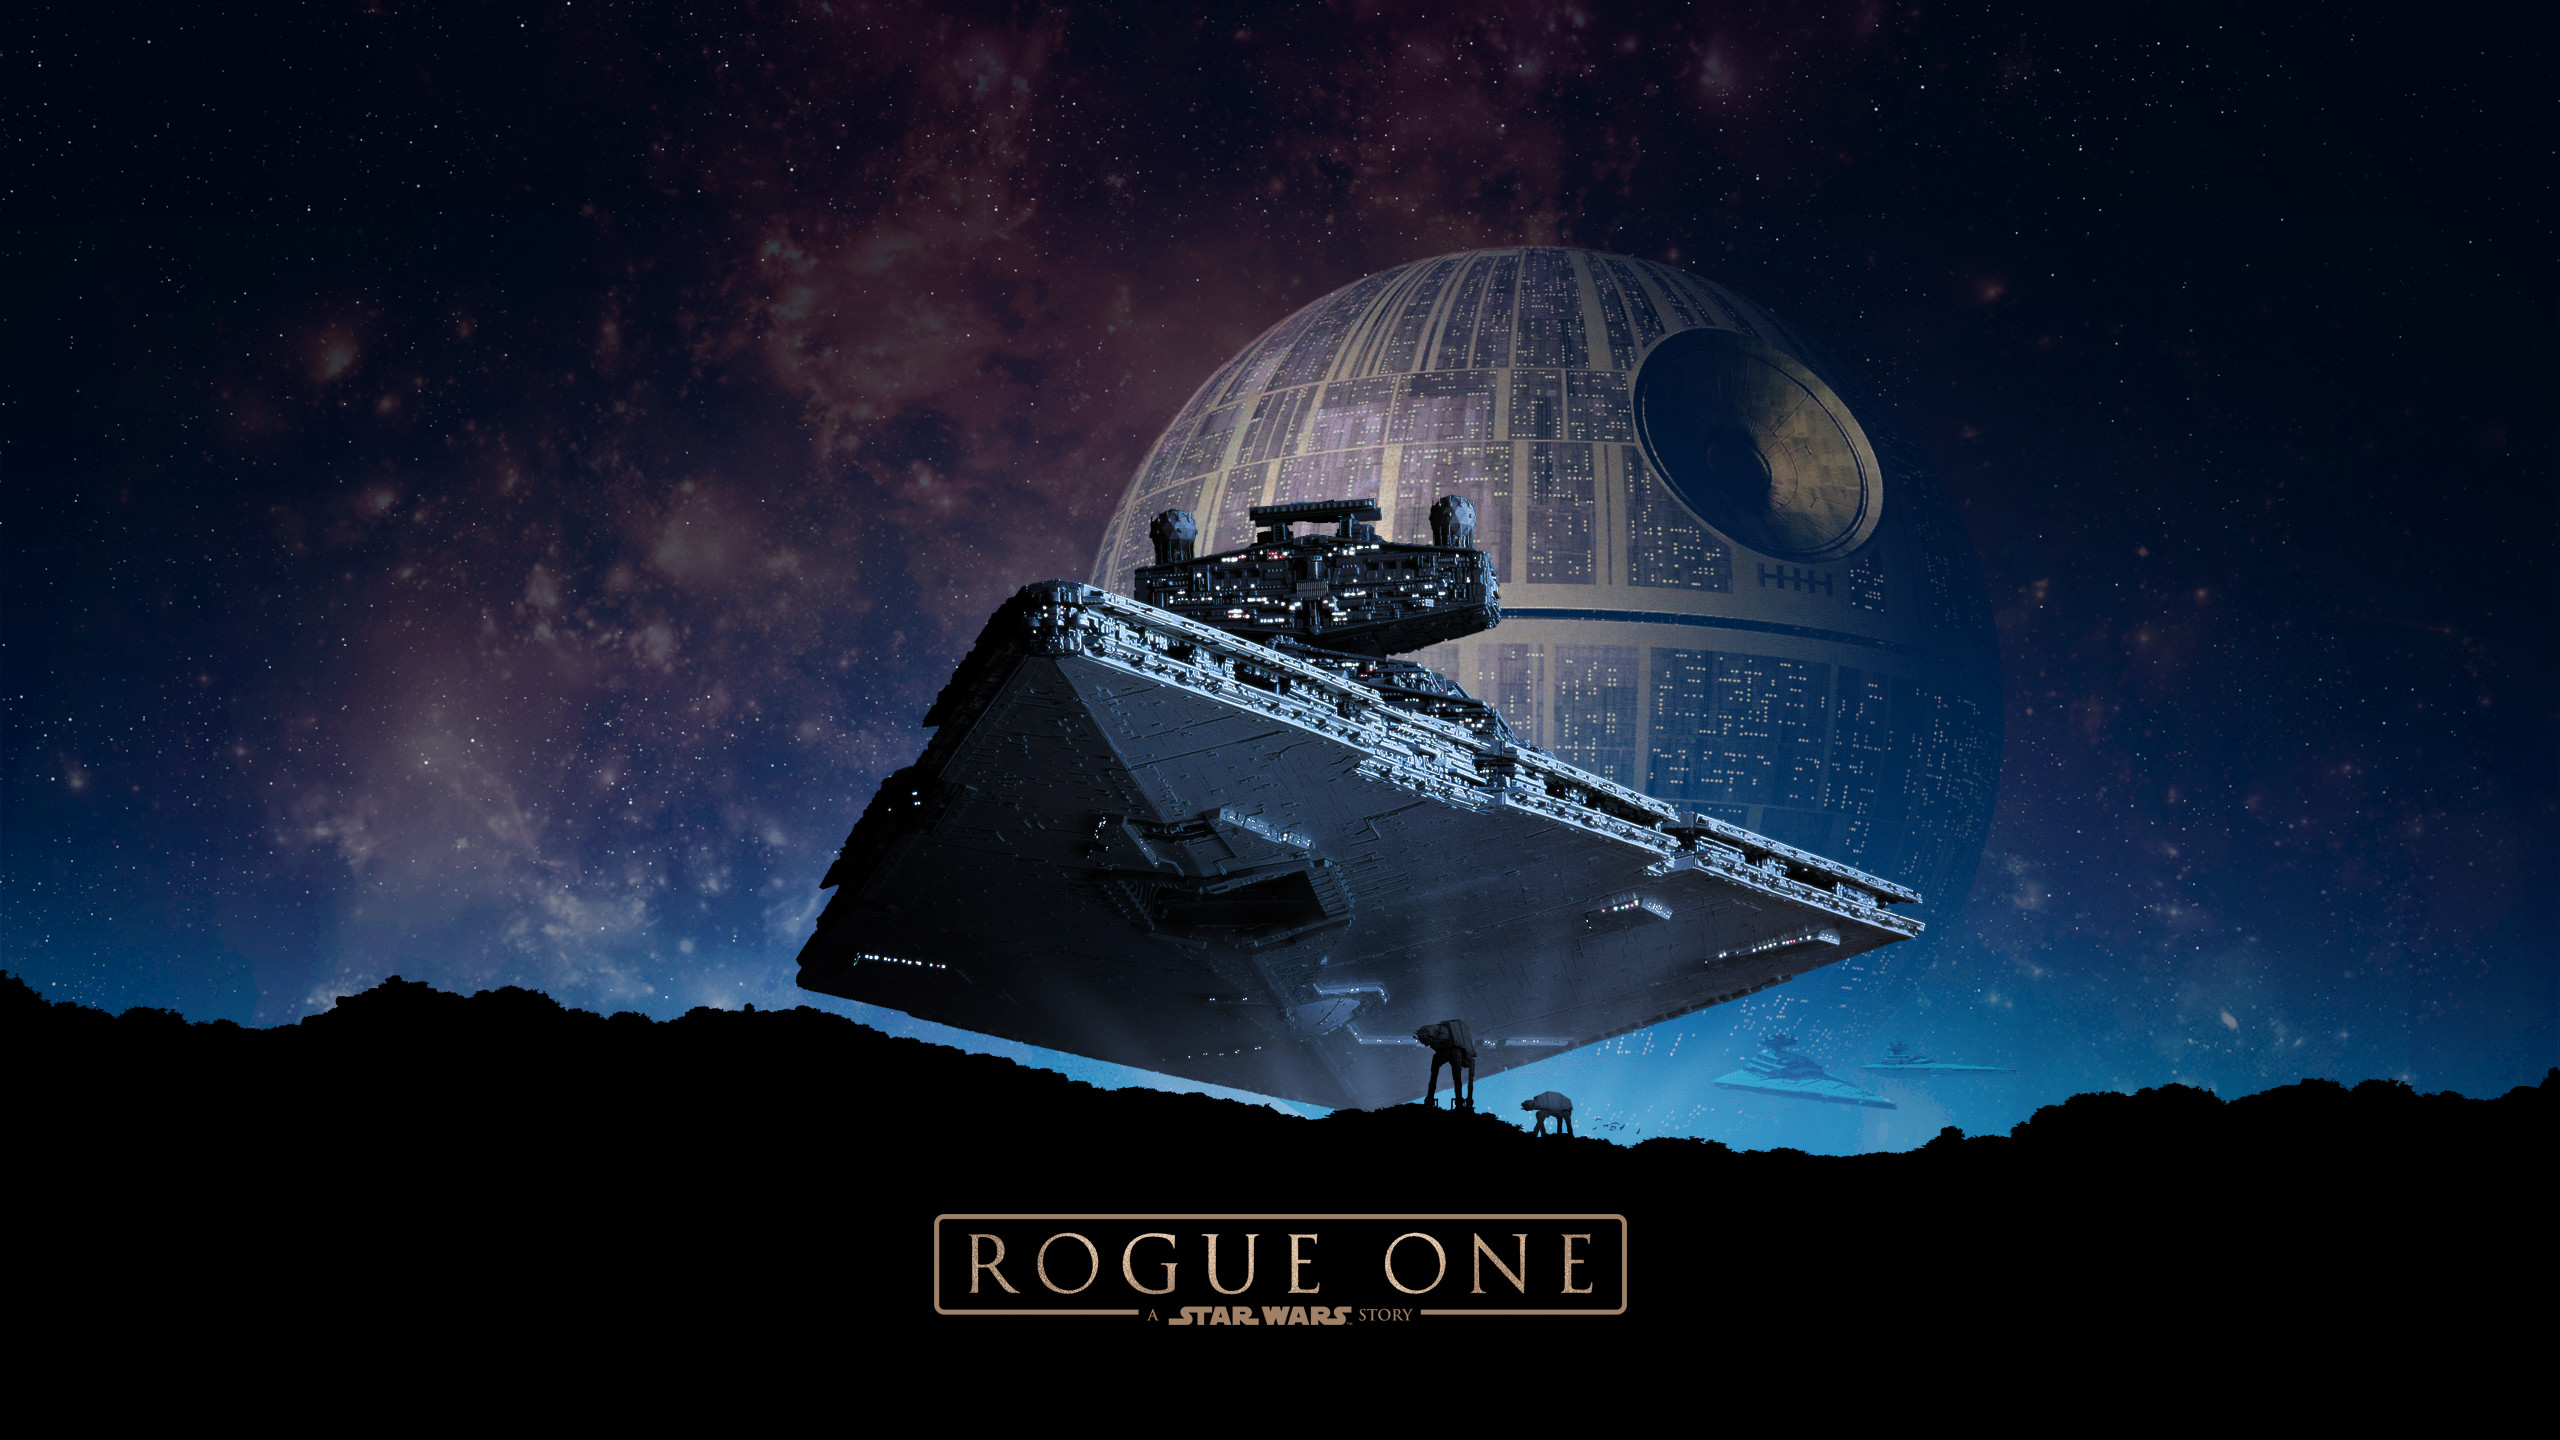 Rogue One Wallpapers ① Wallpapertag